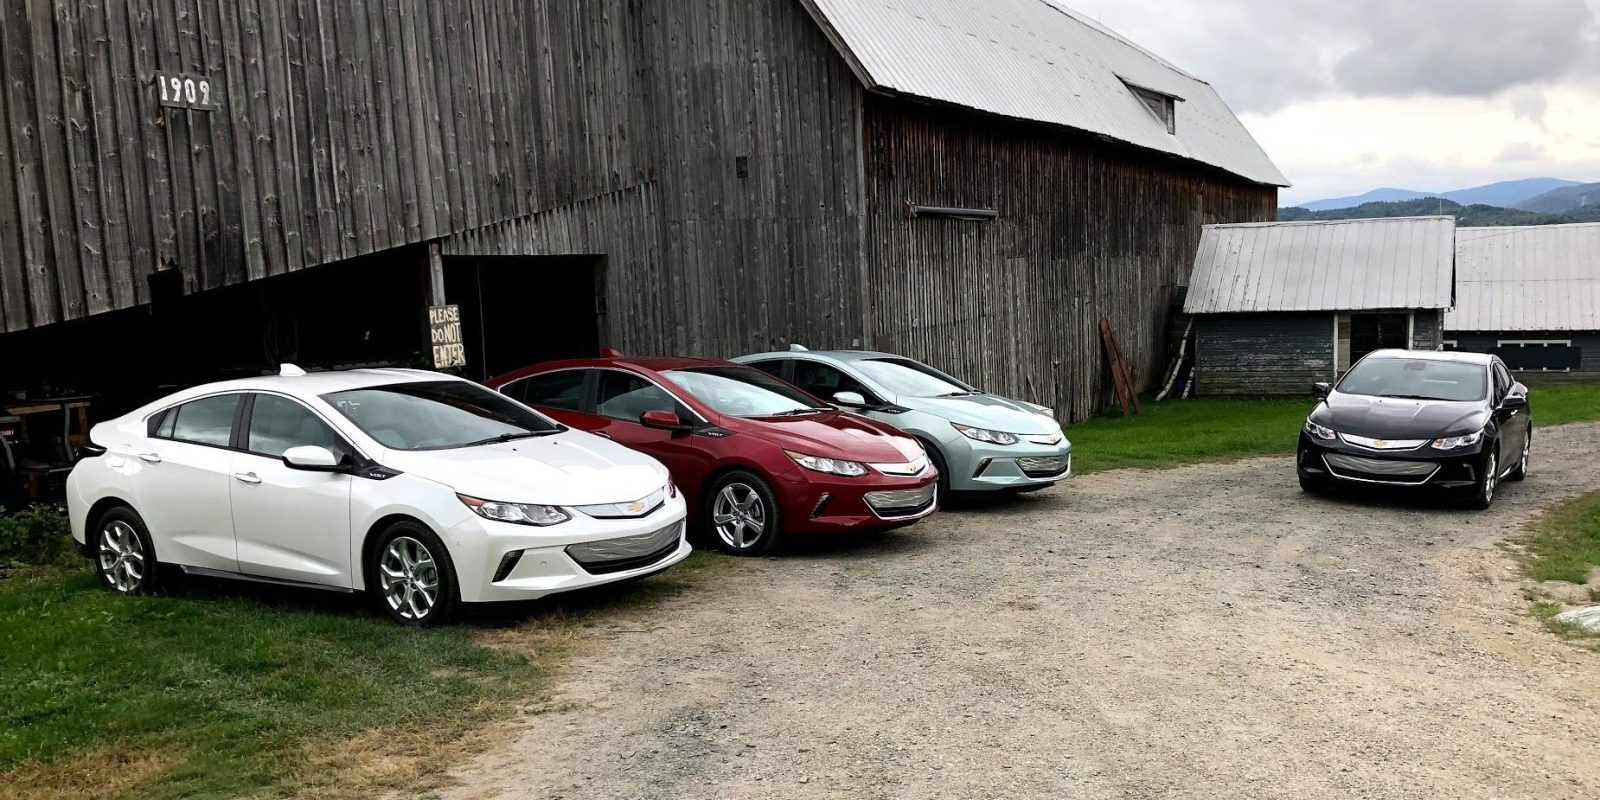 Gm Kills The Chevy Volt Shuts Down Factories But Accelerates Ev